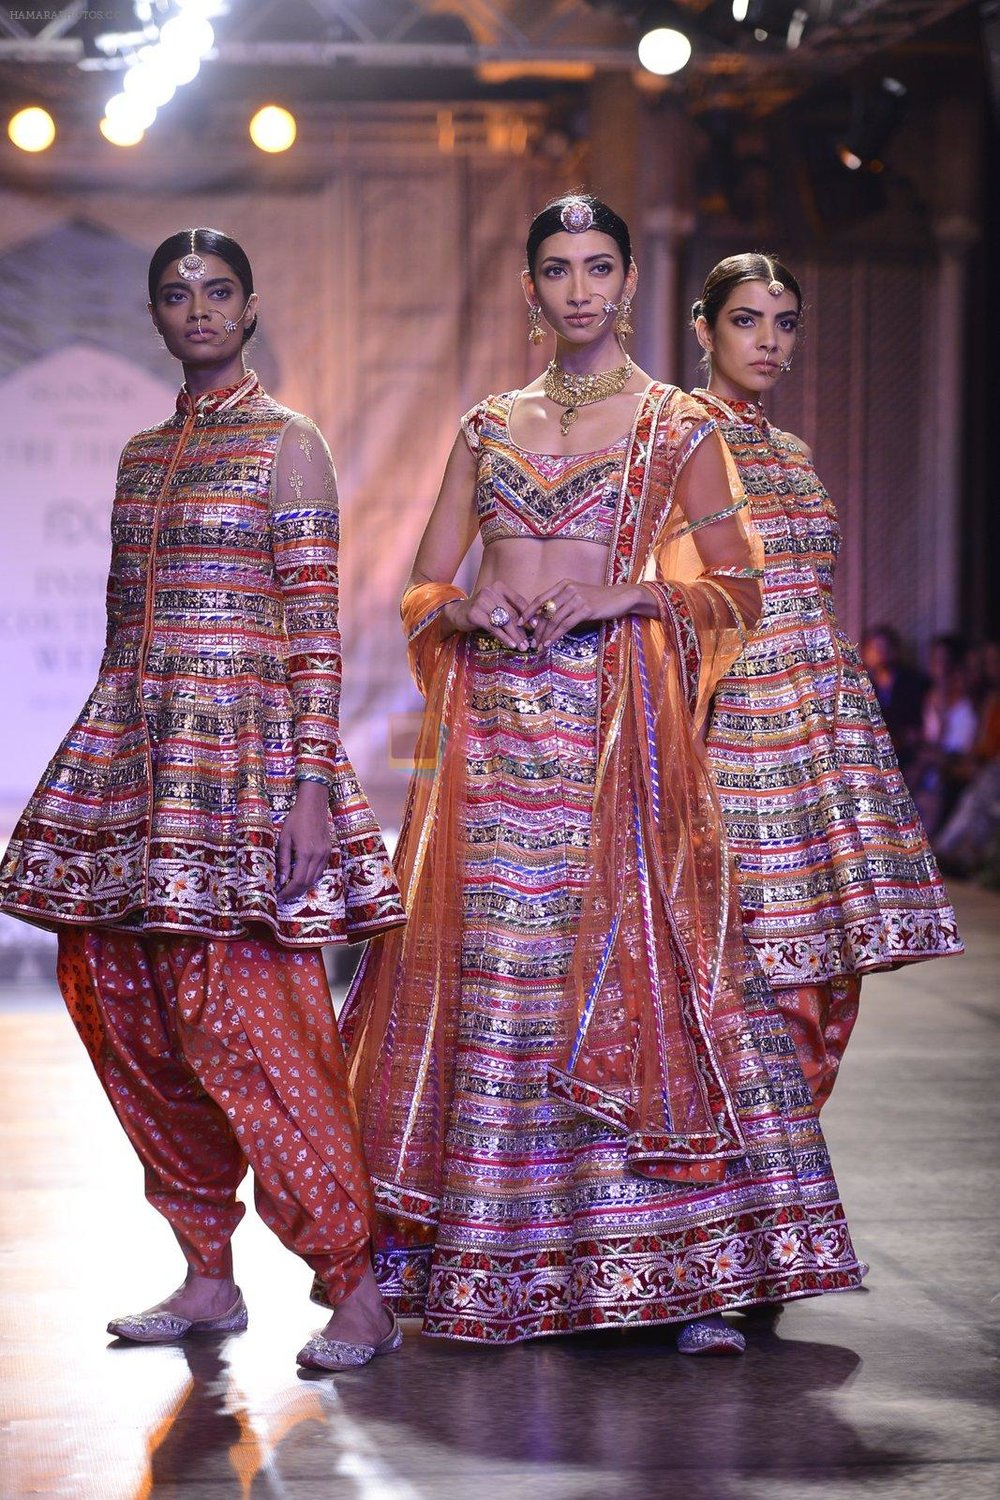 Models-Walk-the-ramp-for-Reynu-Taandon-at-the-FDCI-India-Couture-Week-2016-2.jpg